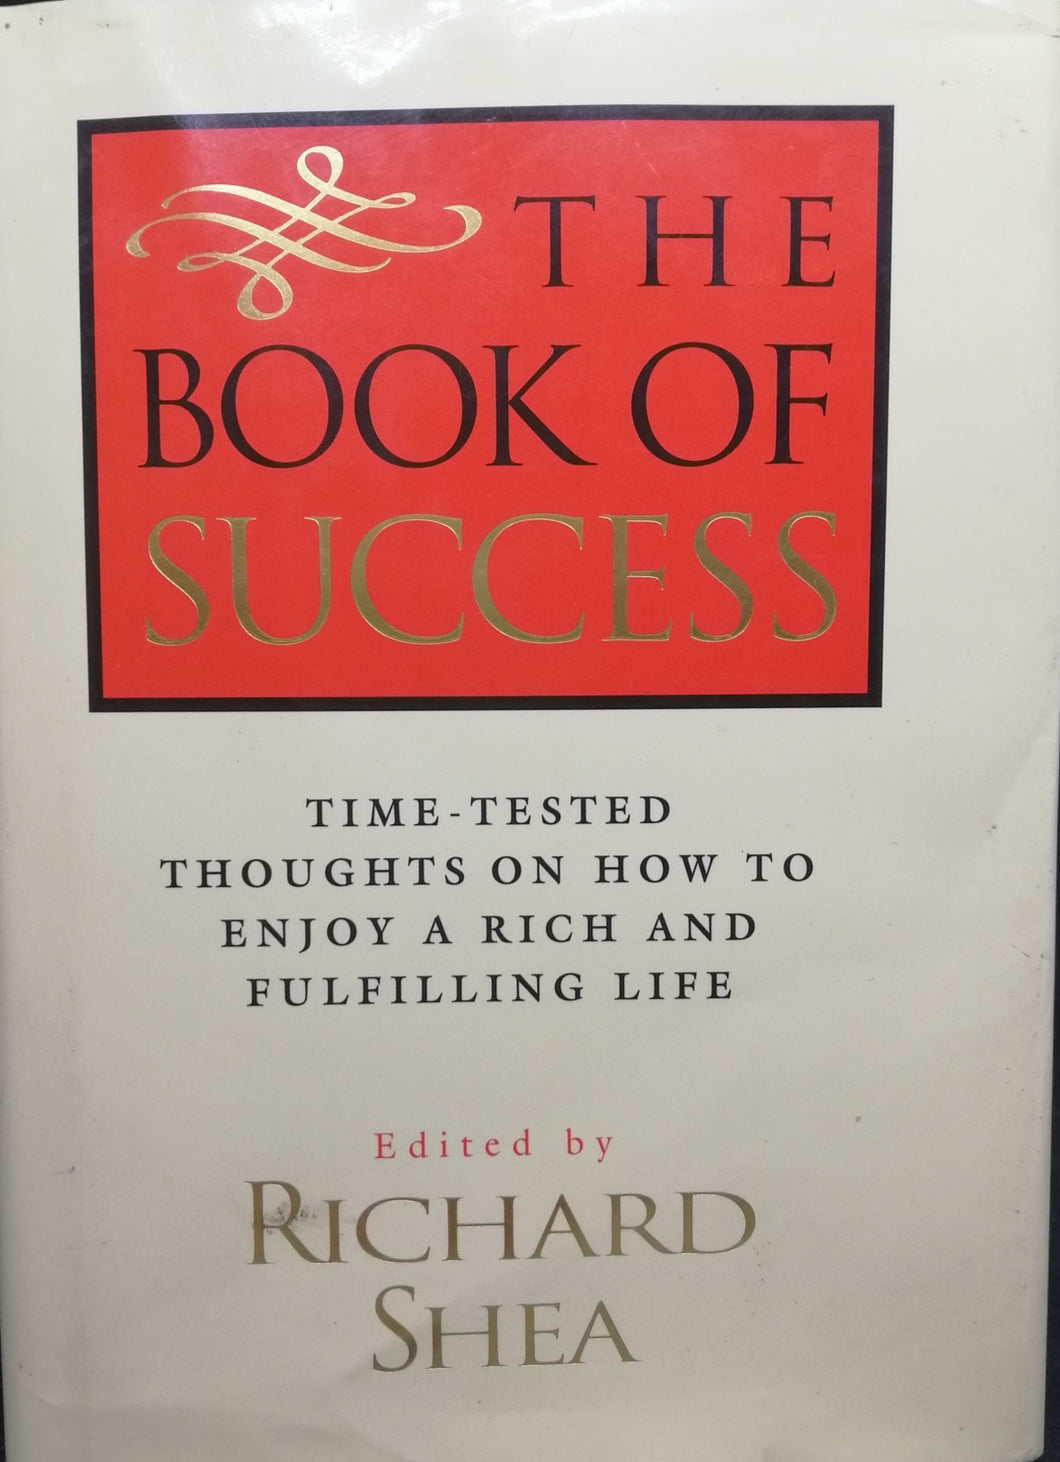 The Book of Success by Richard Shea